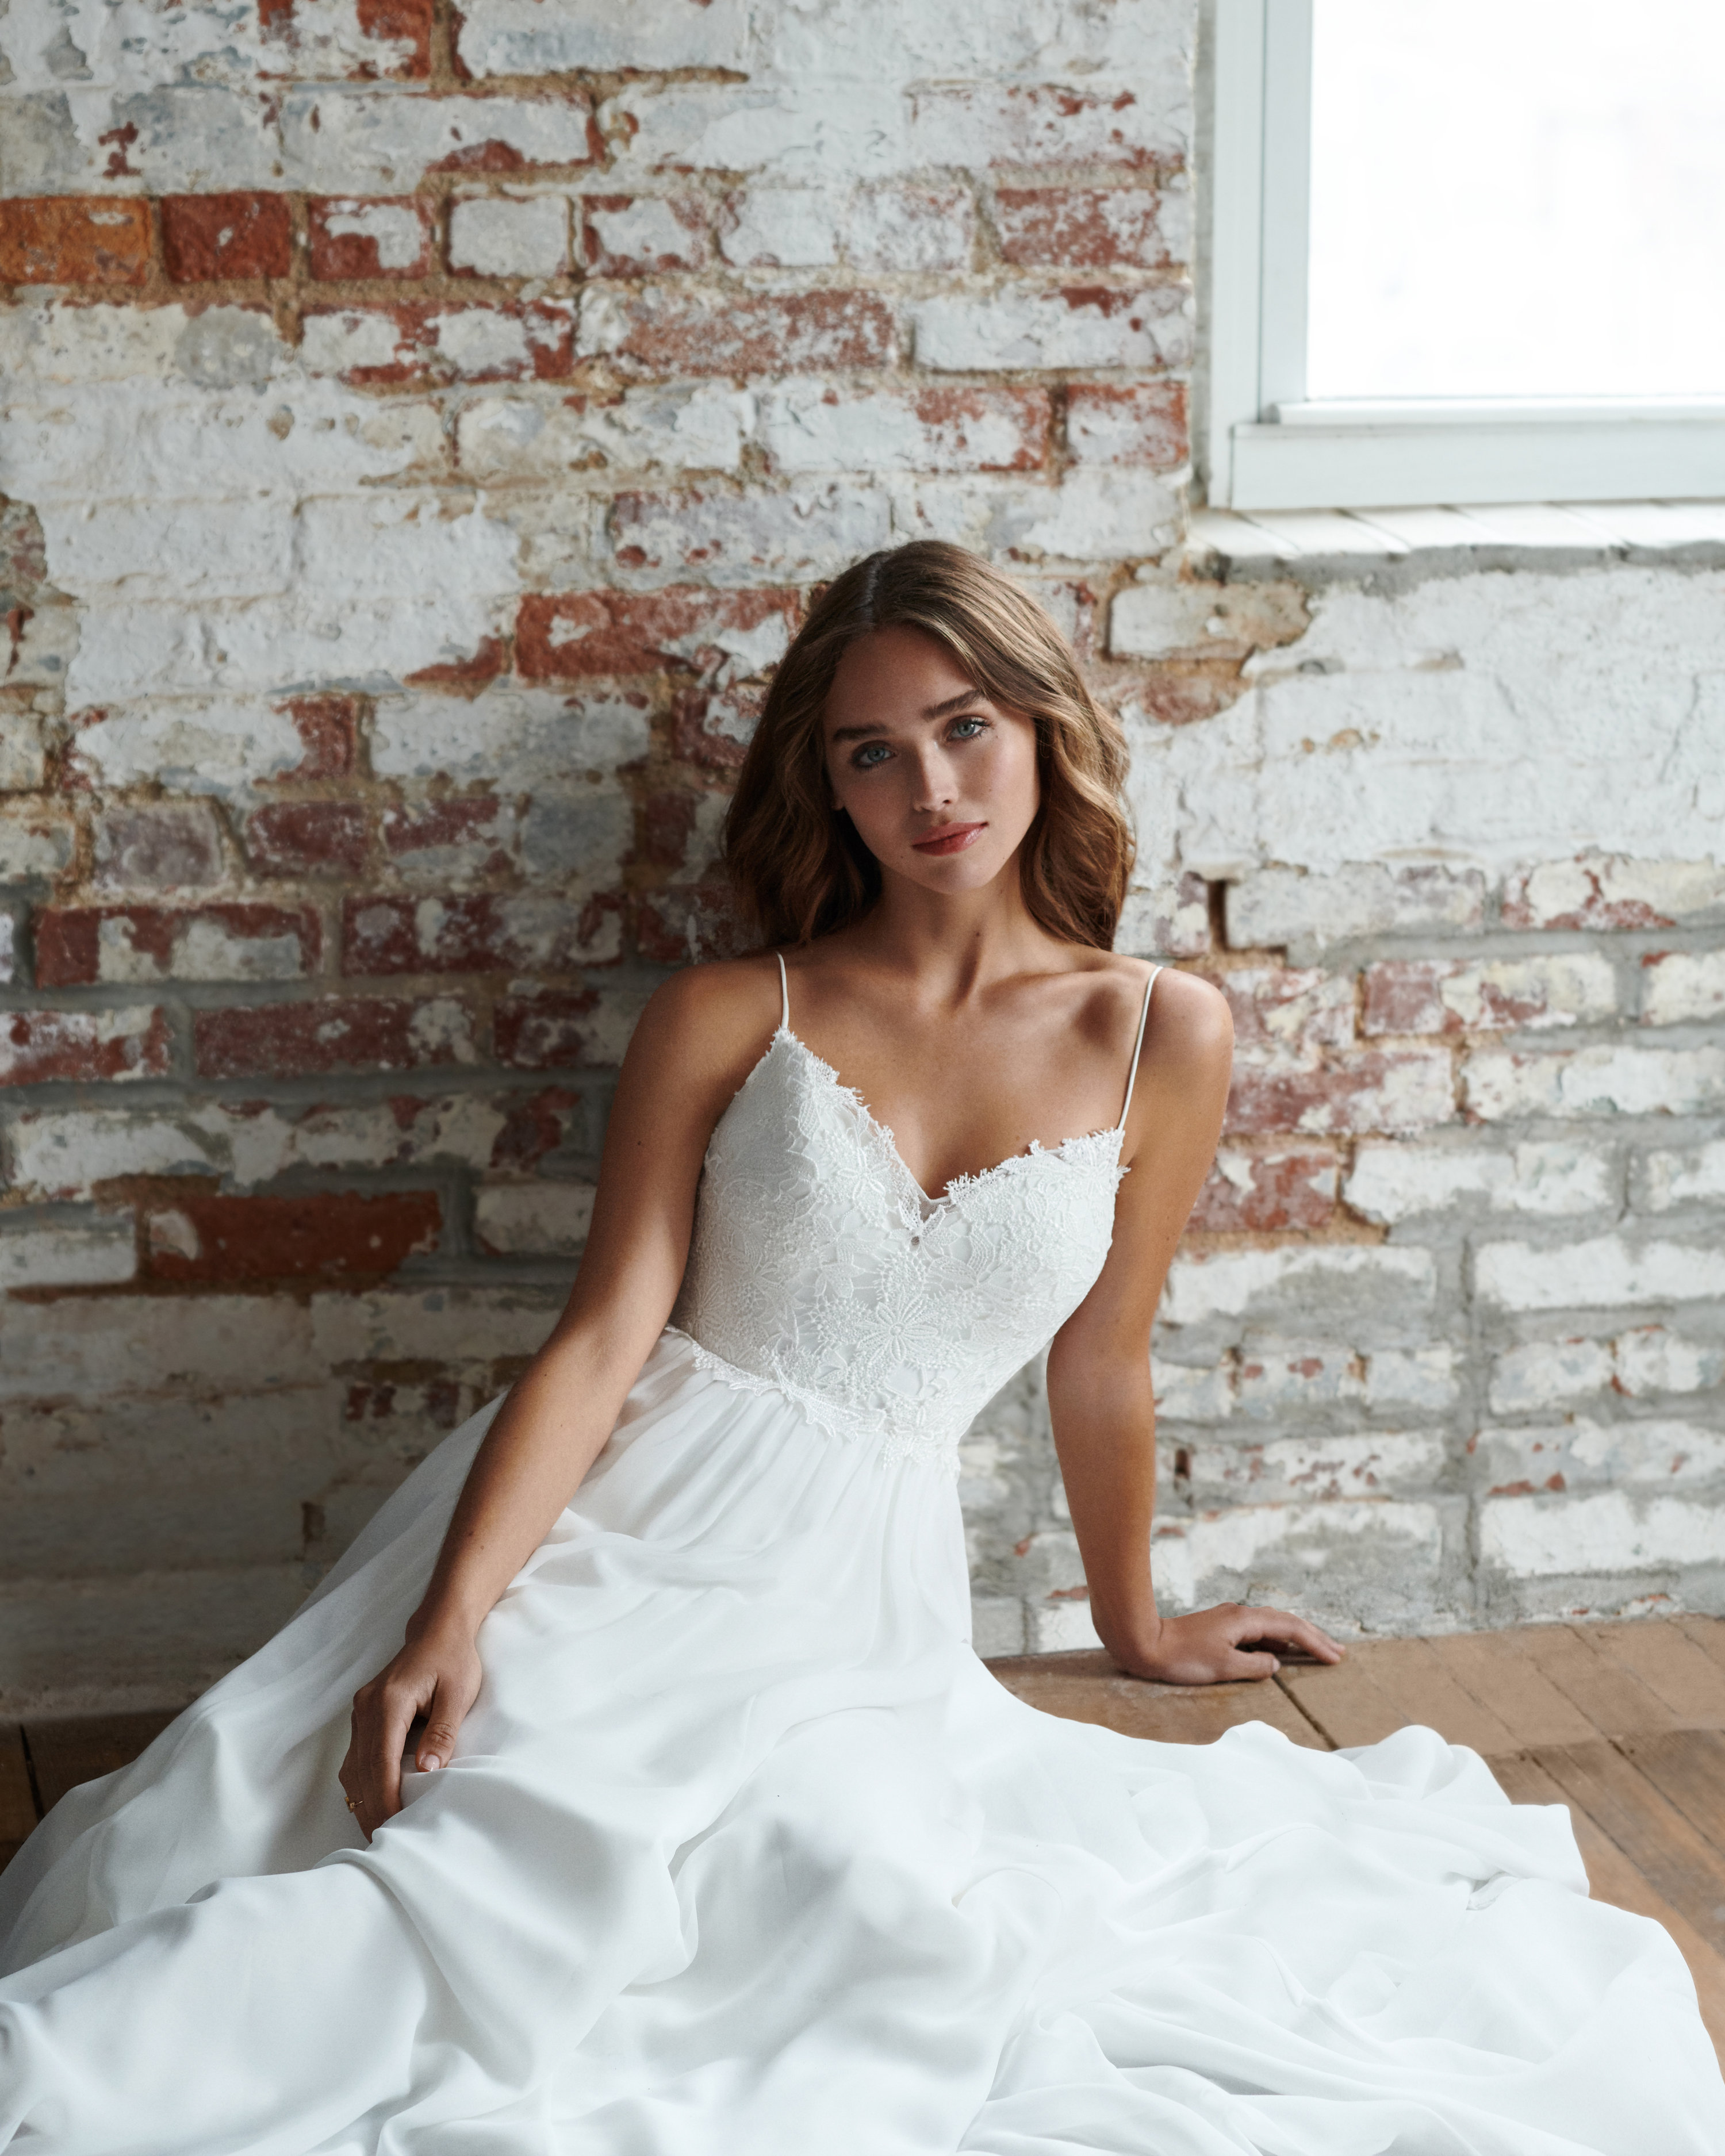 d8f55d78 Bridal Gowns and Wedding Dresses by JLM Couture - Style 7850 Lyle